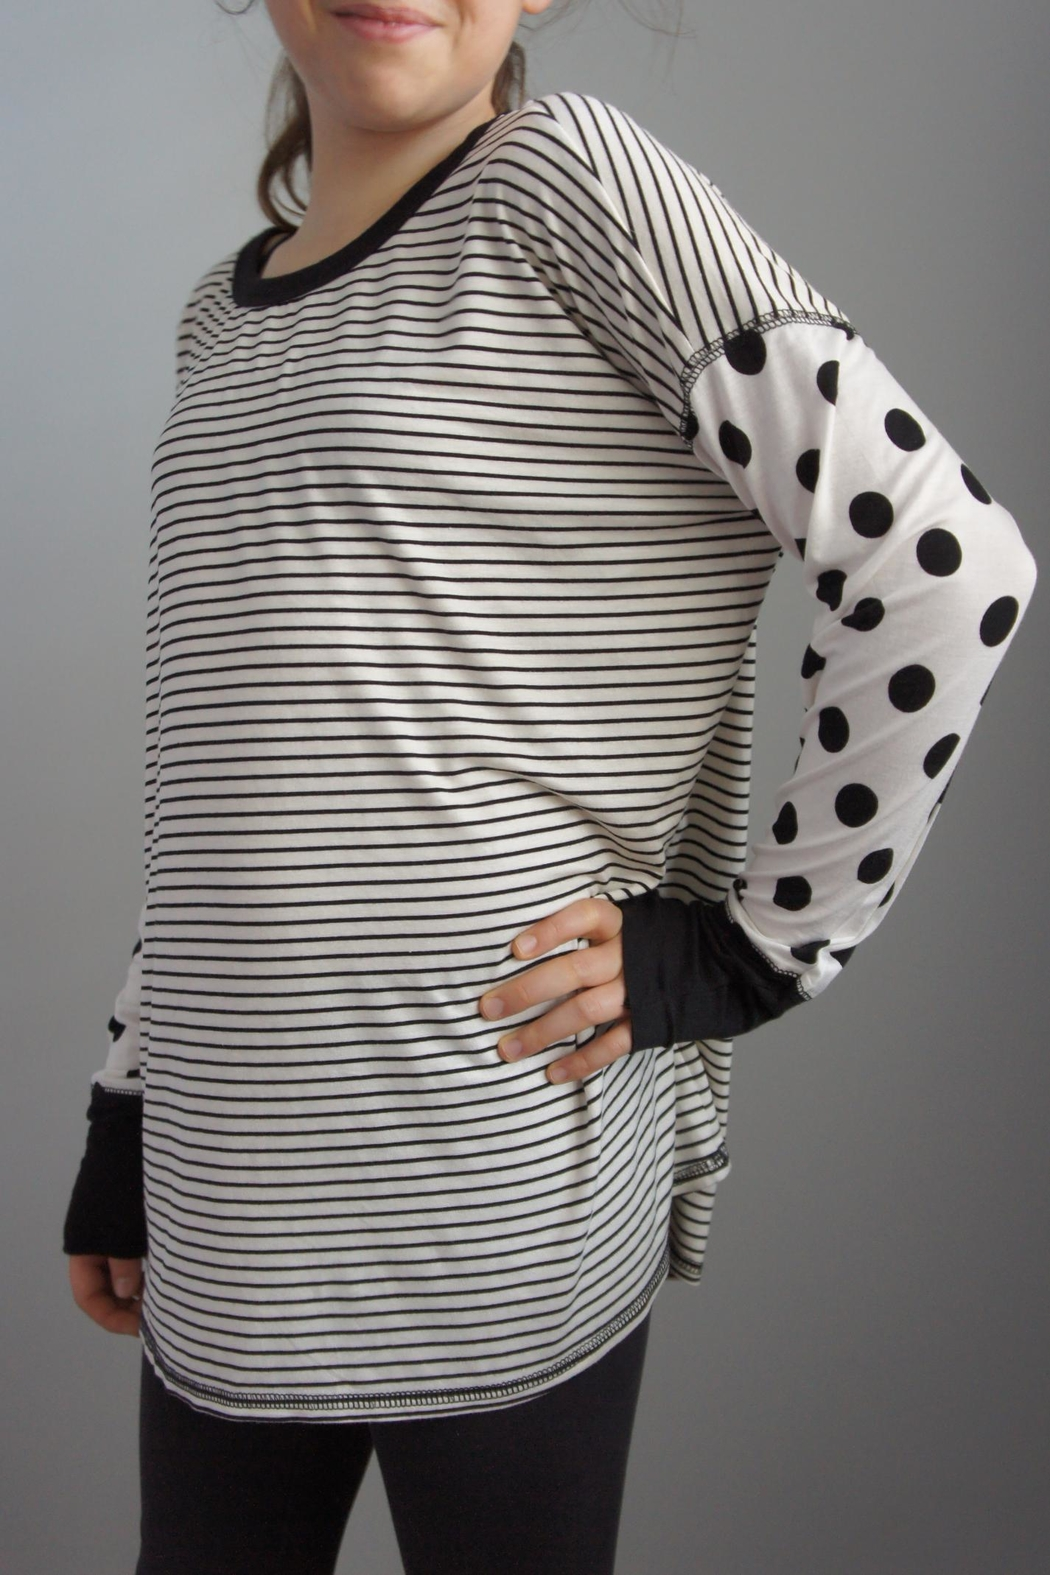 Sweet Claire Stripes Polka-Dot Top - Main Image